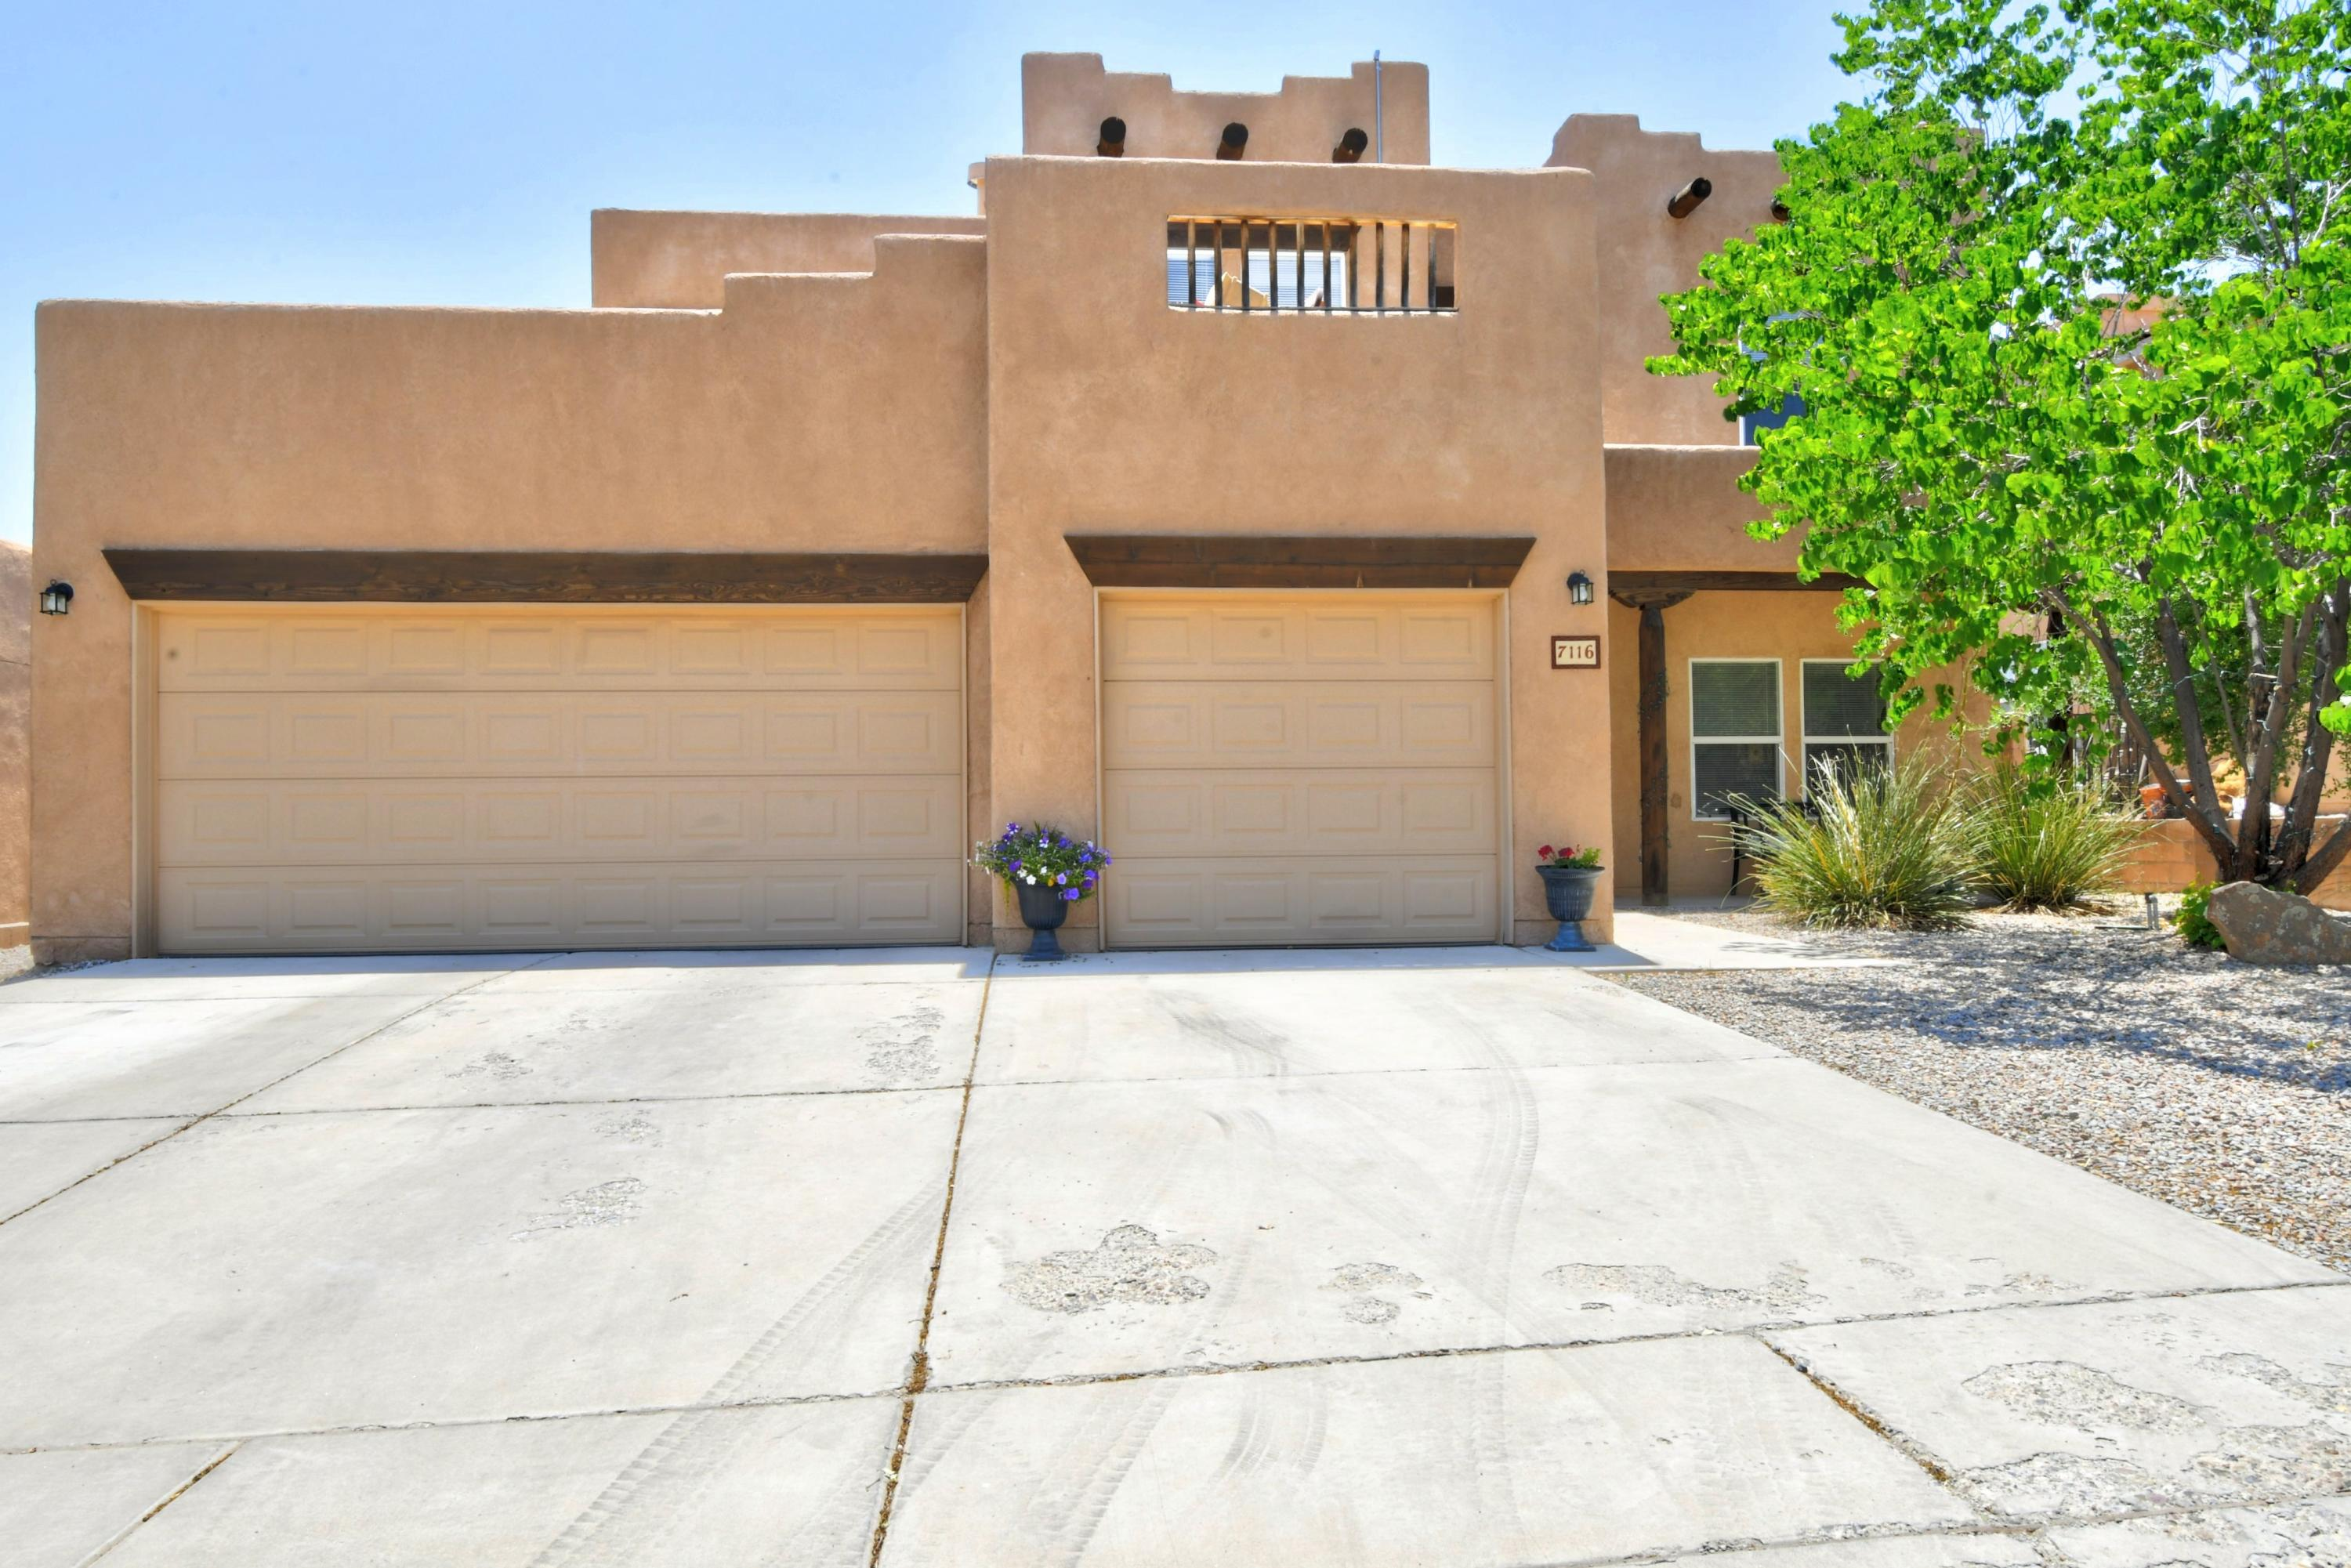 Located in the safe, gated community of Reserve at the Trails, this spectacular 5 bedroom home boasts a wide open floor plan. The kitchen contains ample cabinet space and a beautiful full set of appliances. Lots of counter space with bar top and breakfast nook. Main level contains guest bedroom and full bathroom. Exposed vigas and high ceilings give this gorgeous home it's desirable Pueblo style. Second level offers 4 more bedrooms and a spacious office/family room. A south facing deck provides views of the vast New Mexico skyline. Owner's suite contains spacious walk-in closet and a large full bathroom with separate shower and jetted tub. Updated carpet in upstairs bedrooms and hallways give a warm, comfy feel. Solar panels help offset the electric cost of the 2 refrigerated air units.